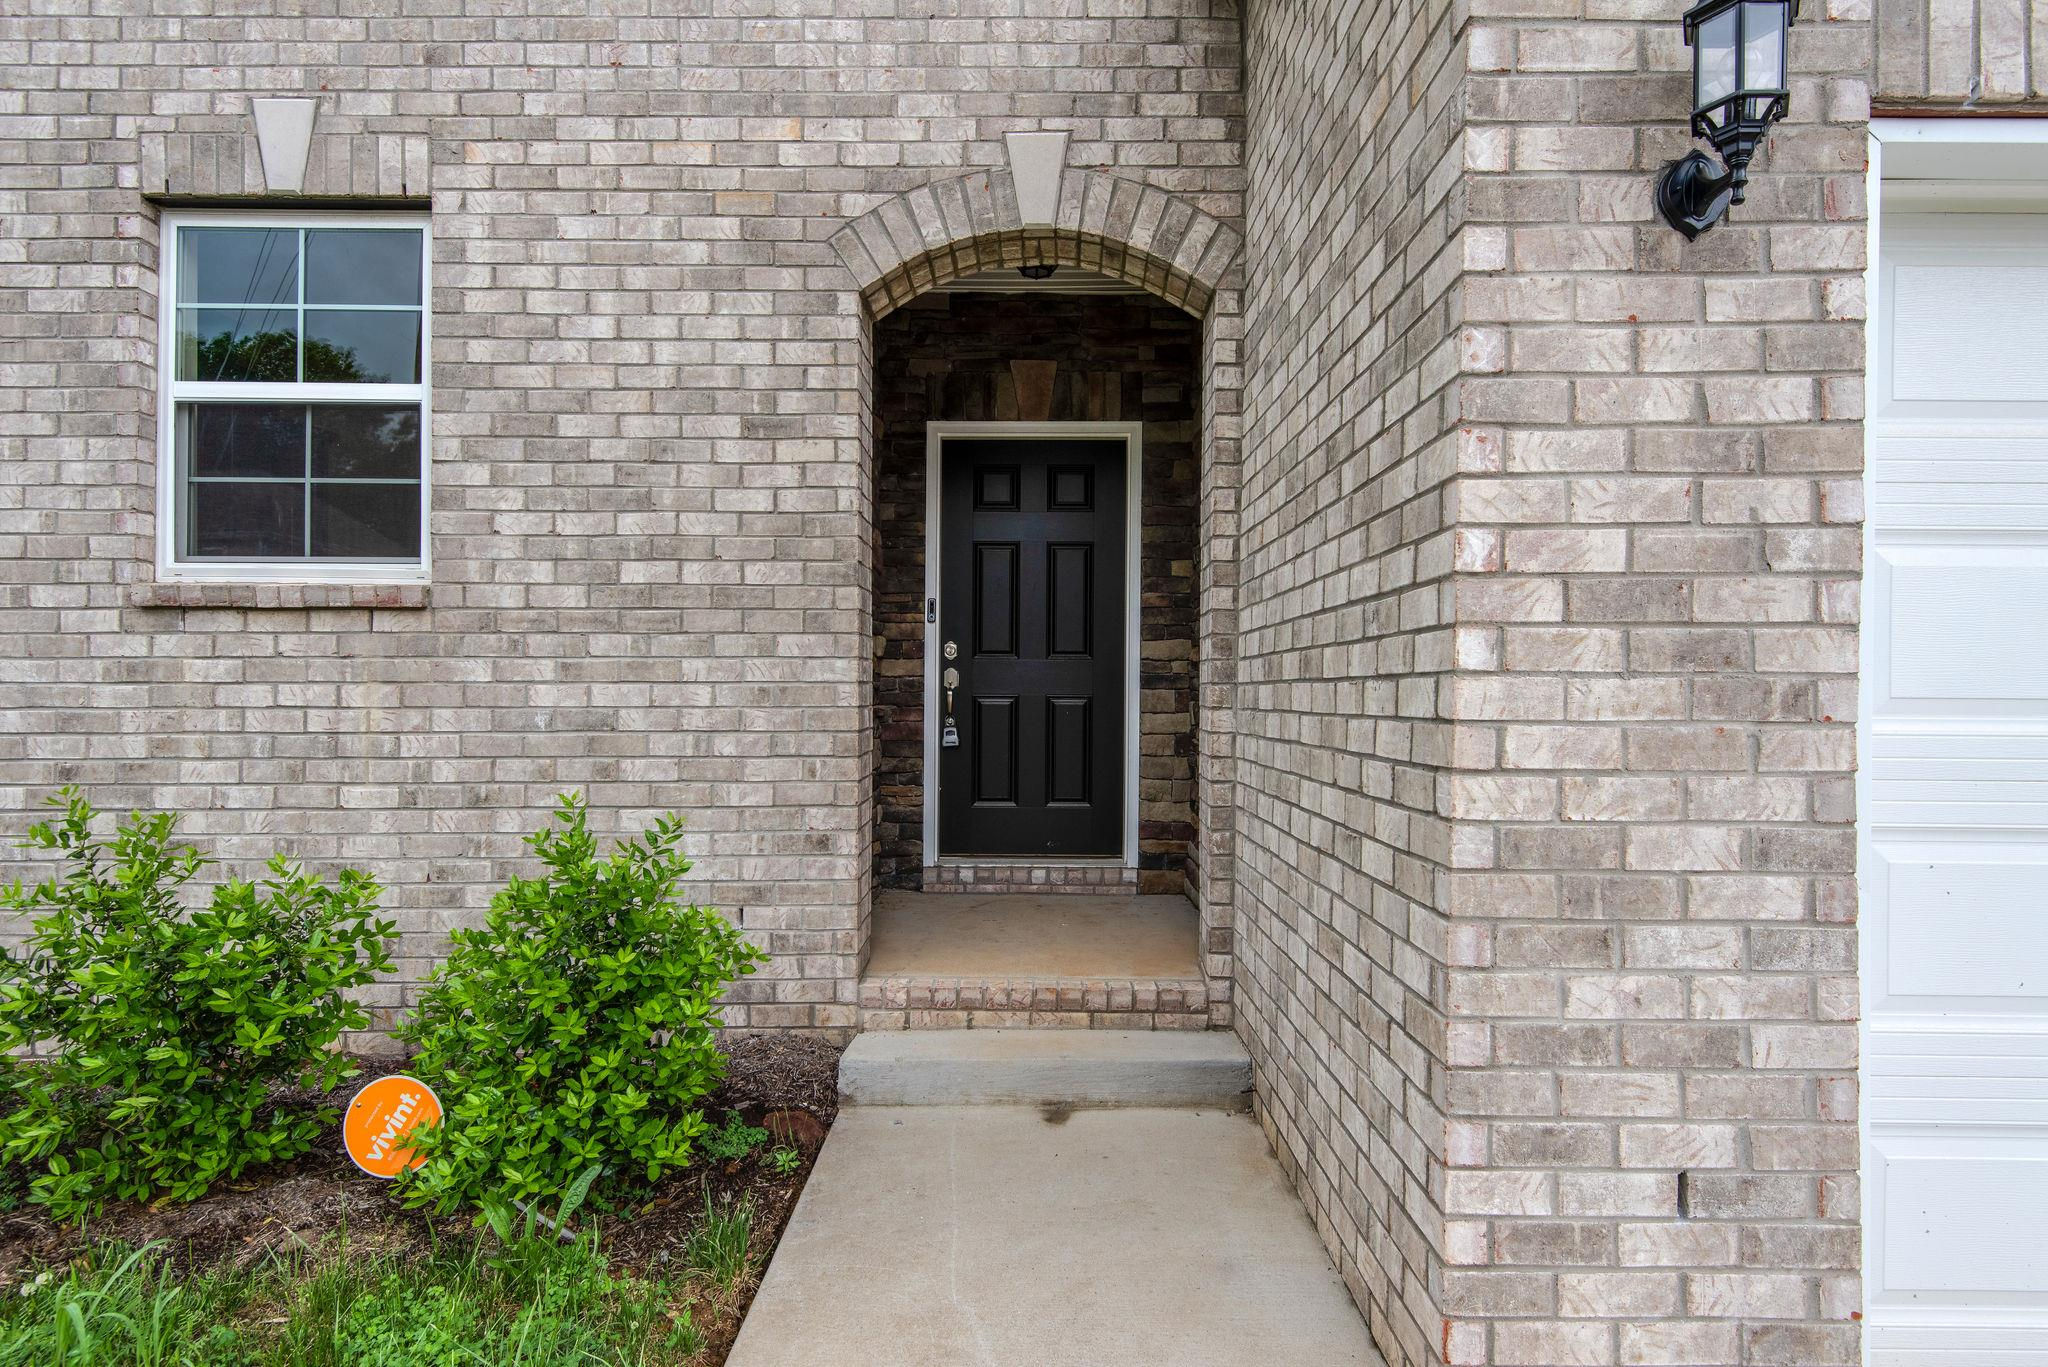 812 Pin Oak Dr, Nashville-Antioch in Davidson County County, TN 37013 Home for Sale